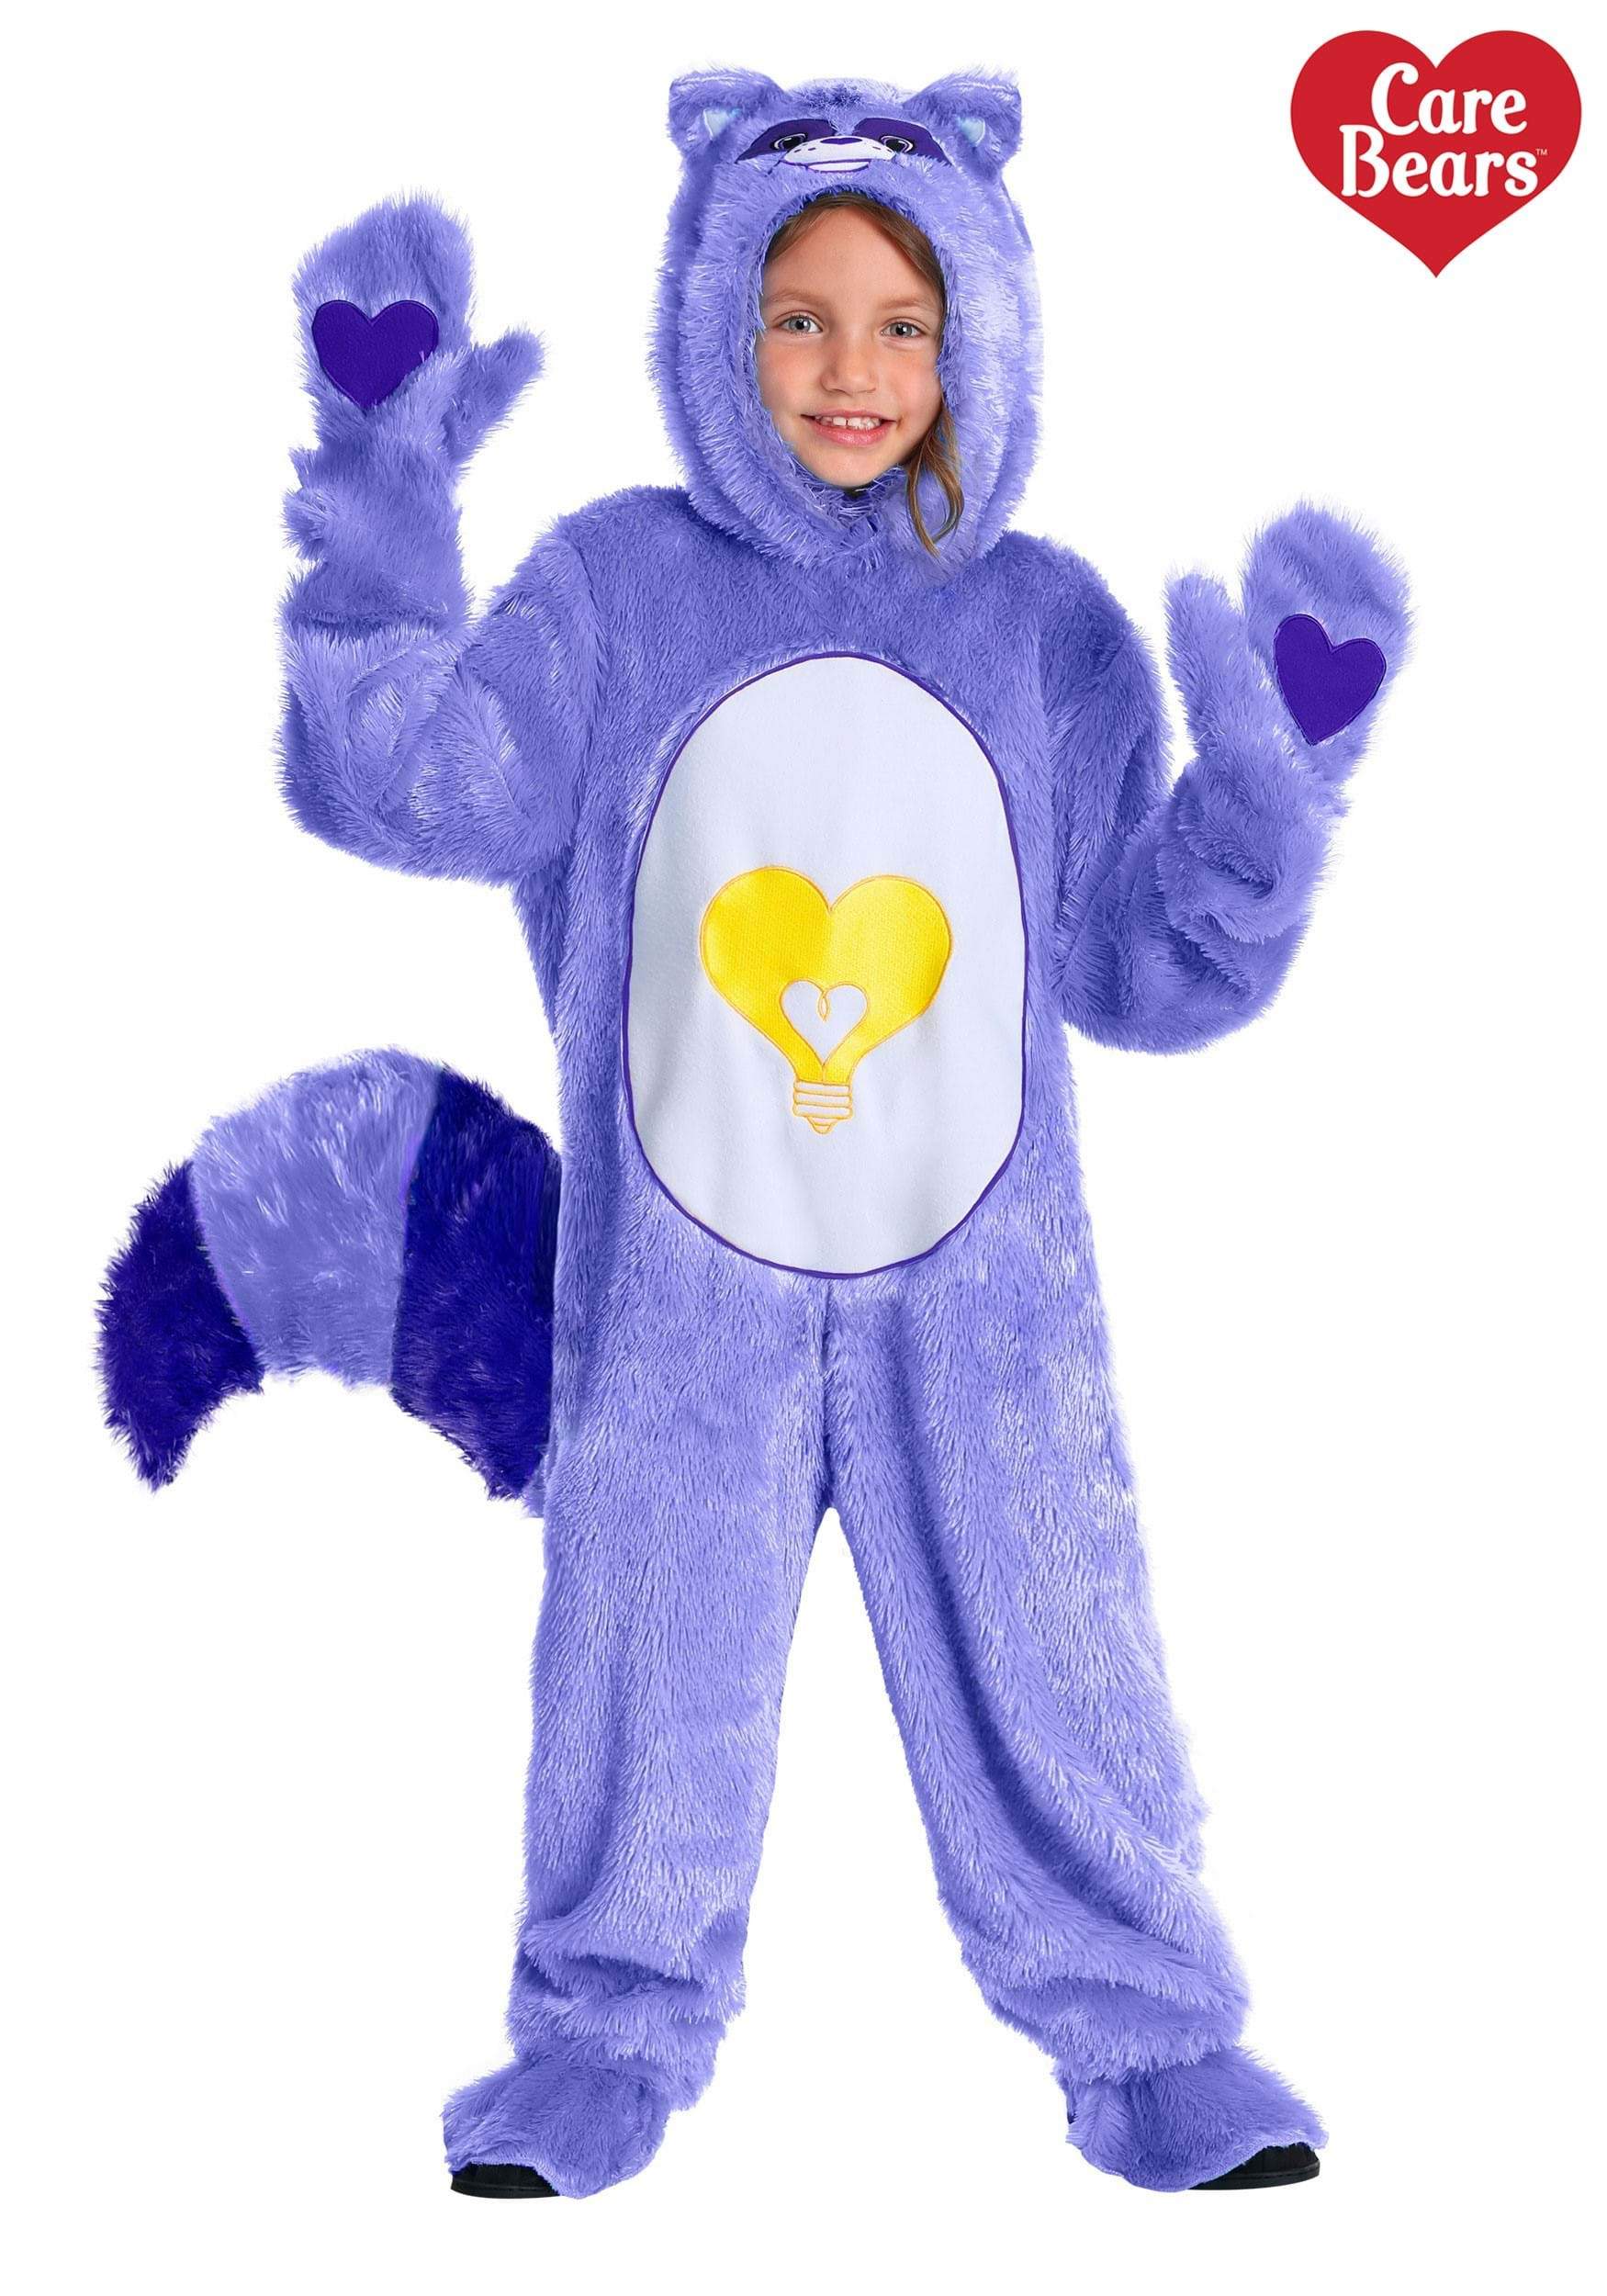 Care Bears Cousins Bright Heart Raccoon Toddler Costume